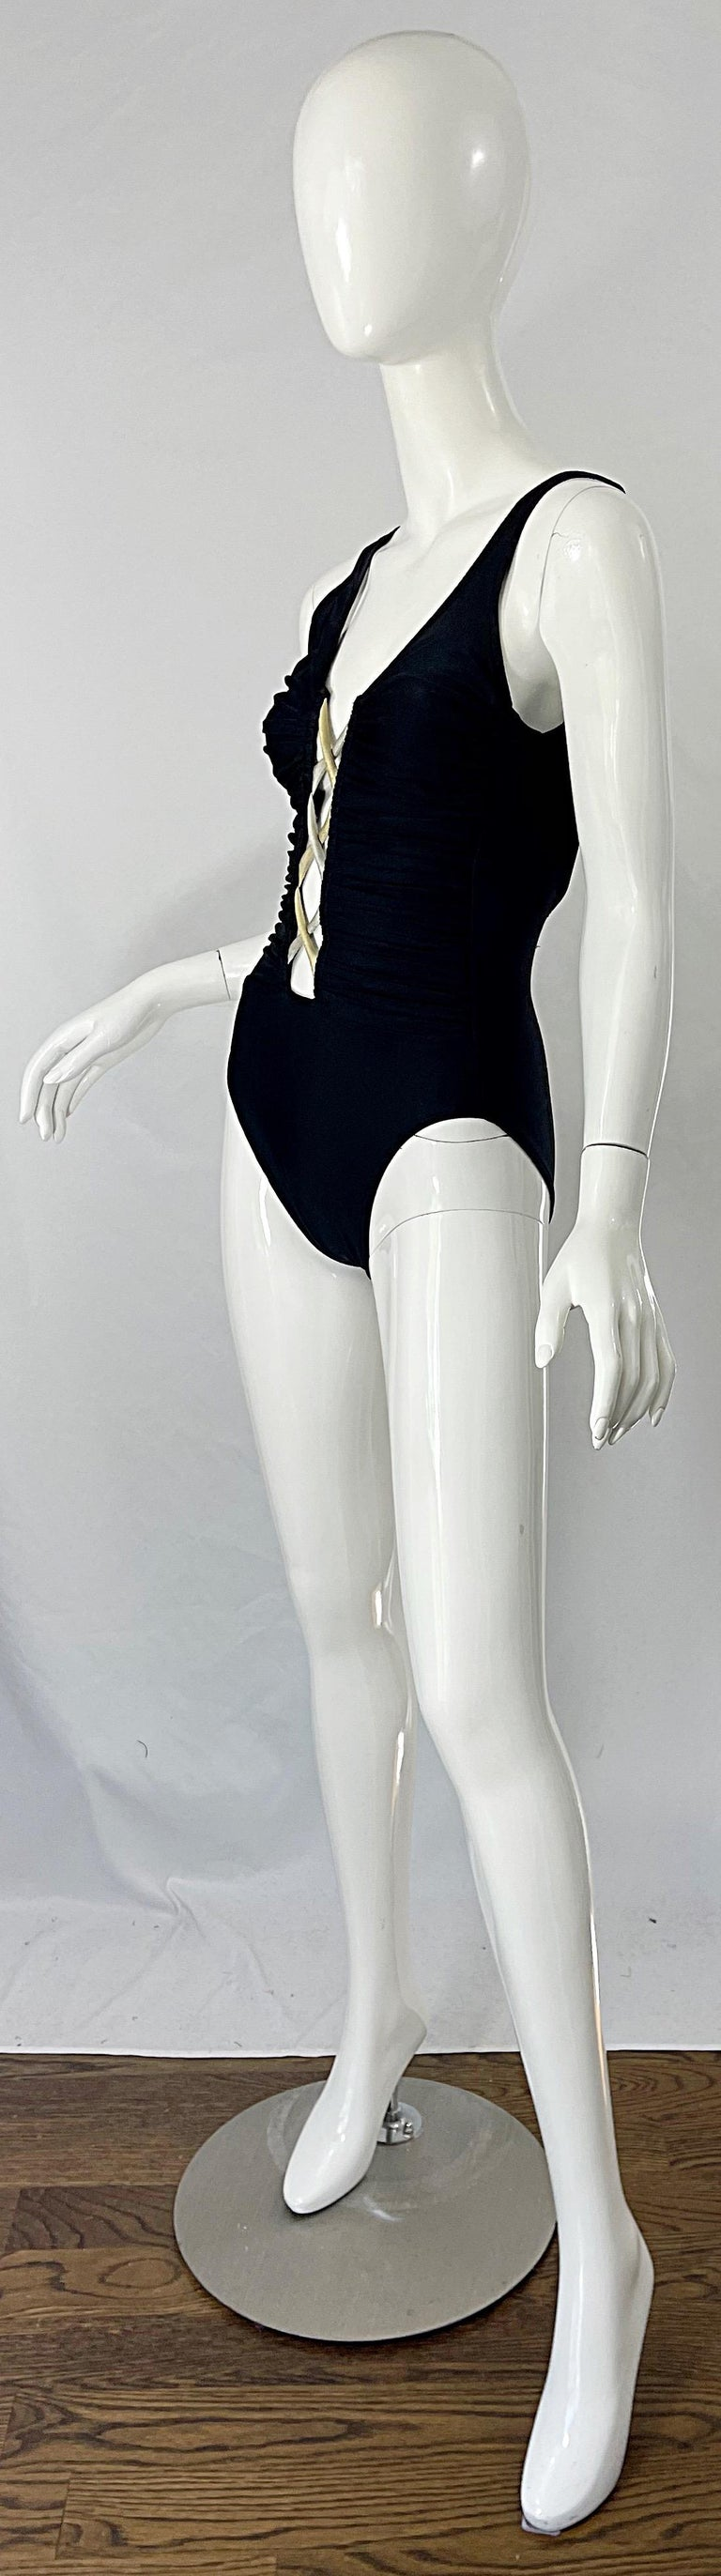 Bill Blass 1990s Black Sexy Cut Out Size 6 / 8 One Piece 90s Swimsuit Bodysuit For Sale 3